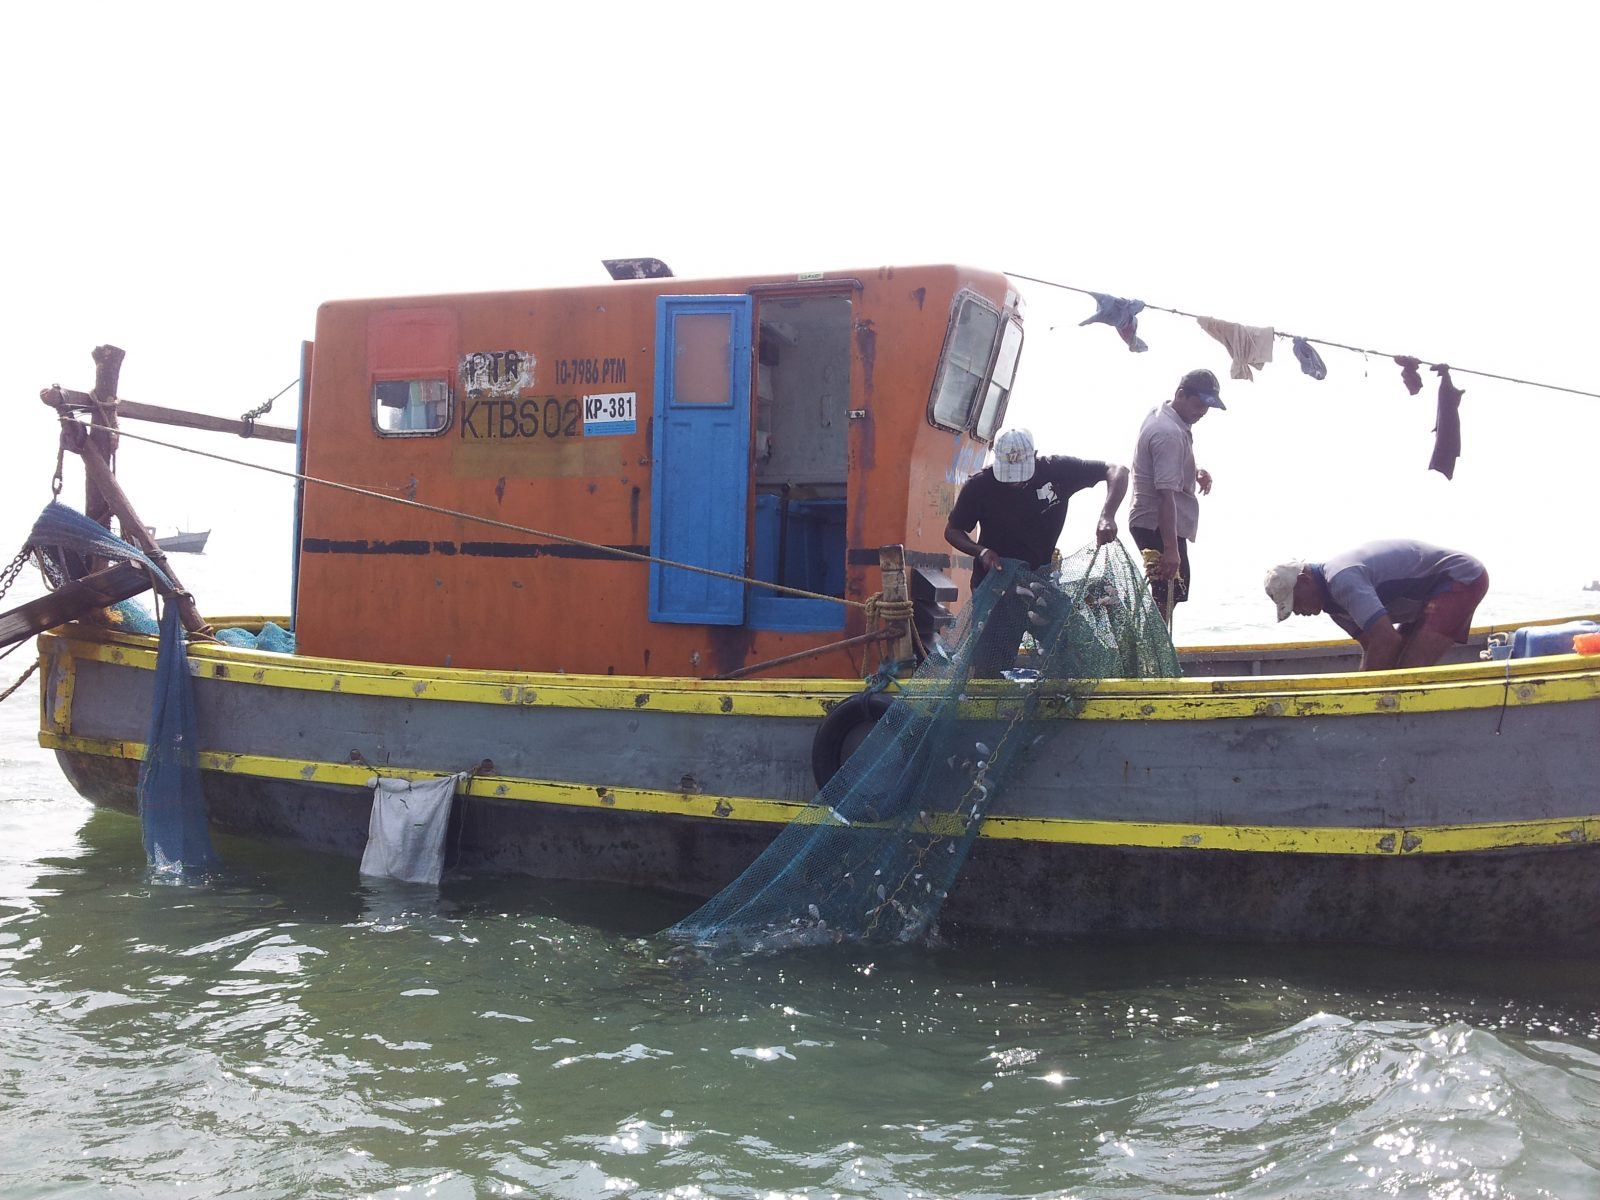 Illegal Bottom Trawling in Sri Lanka